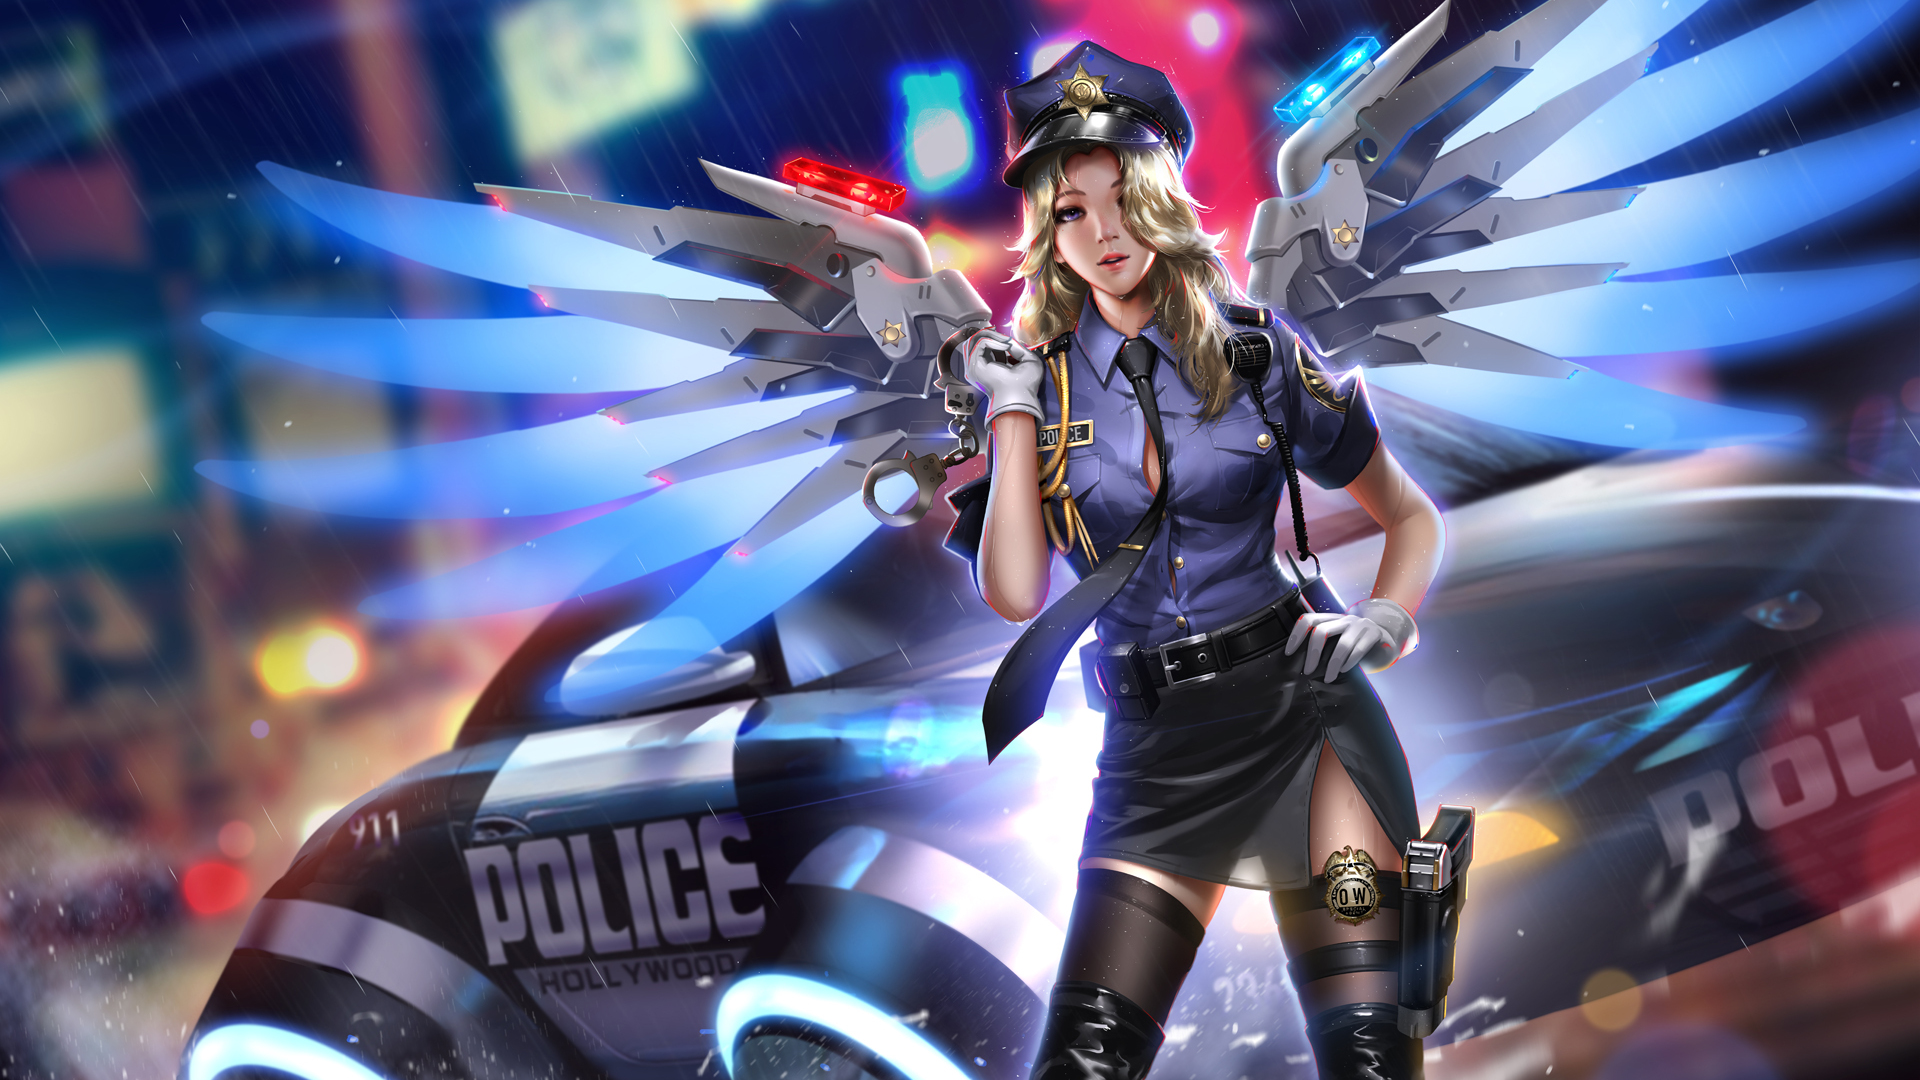 1920X1080 Police Girl Mercy Overwatch 2018 Hd Laptop Full Hd 1080P Hd 4K Wallpapers -6557